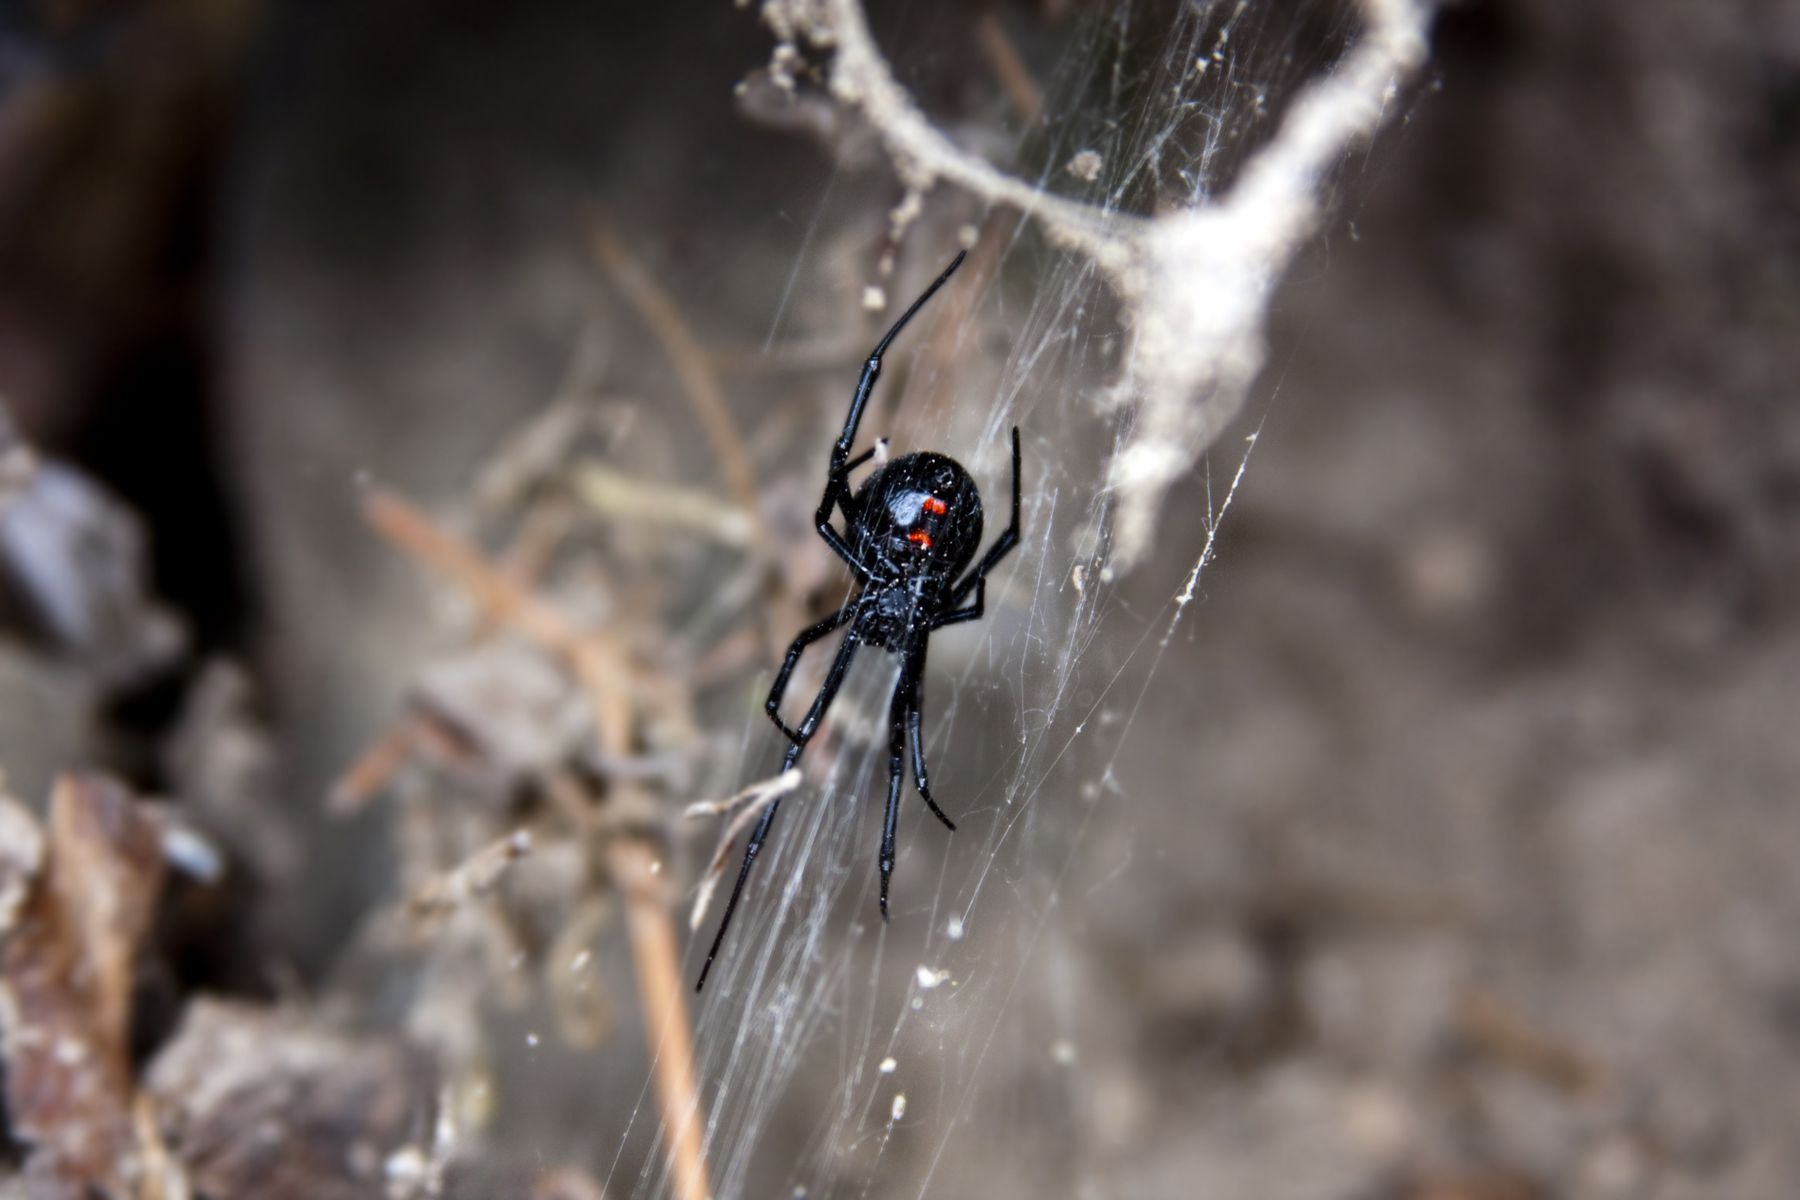 The black widow's natural habitat is a shaded, wooded area.